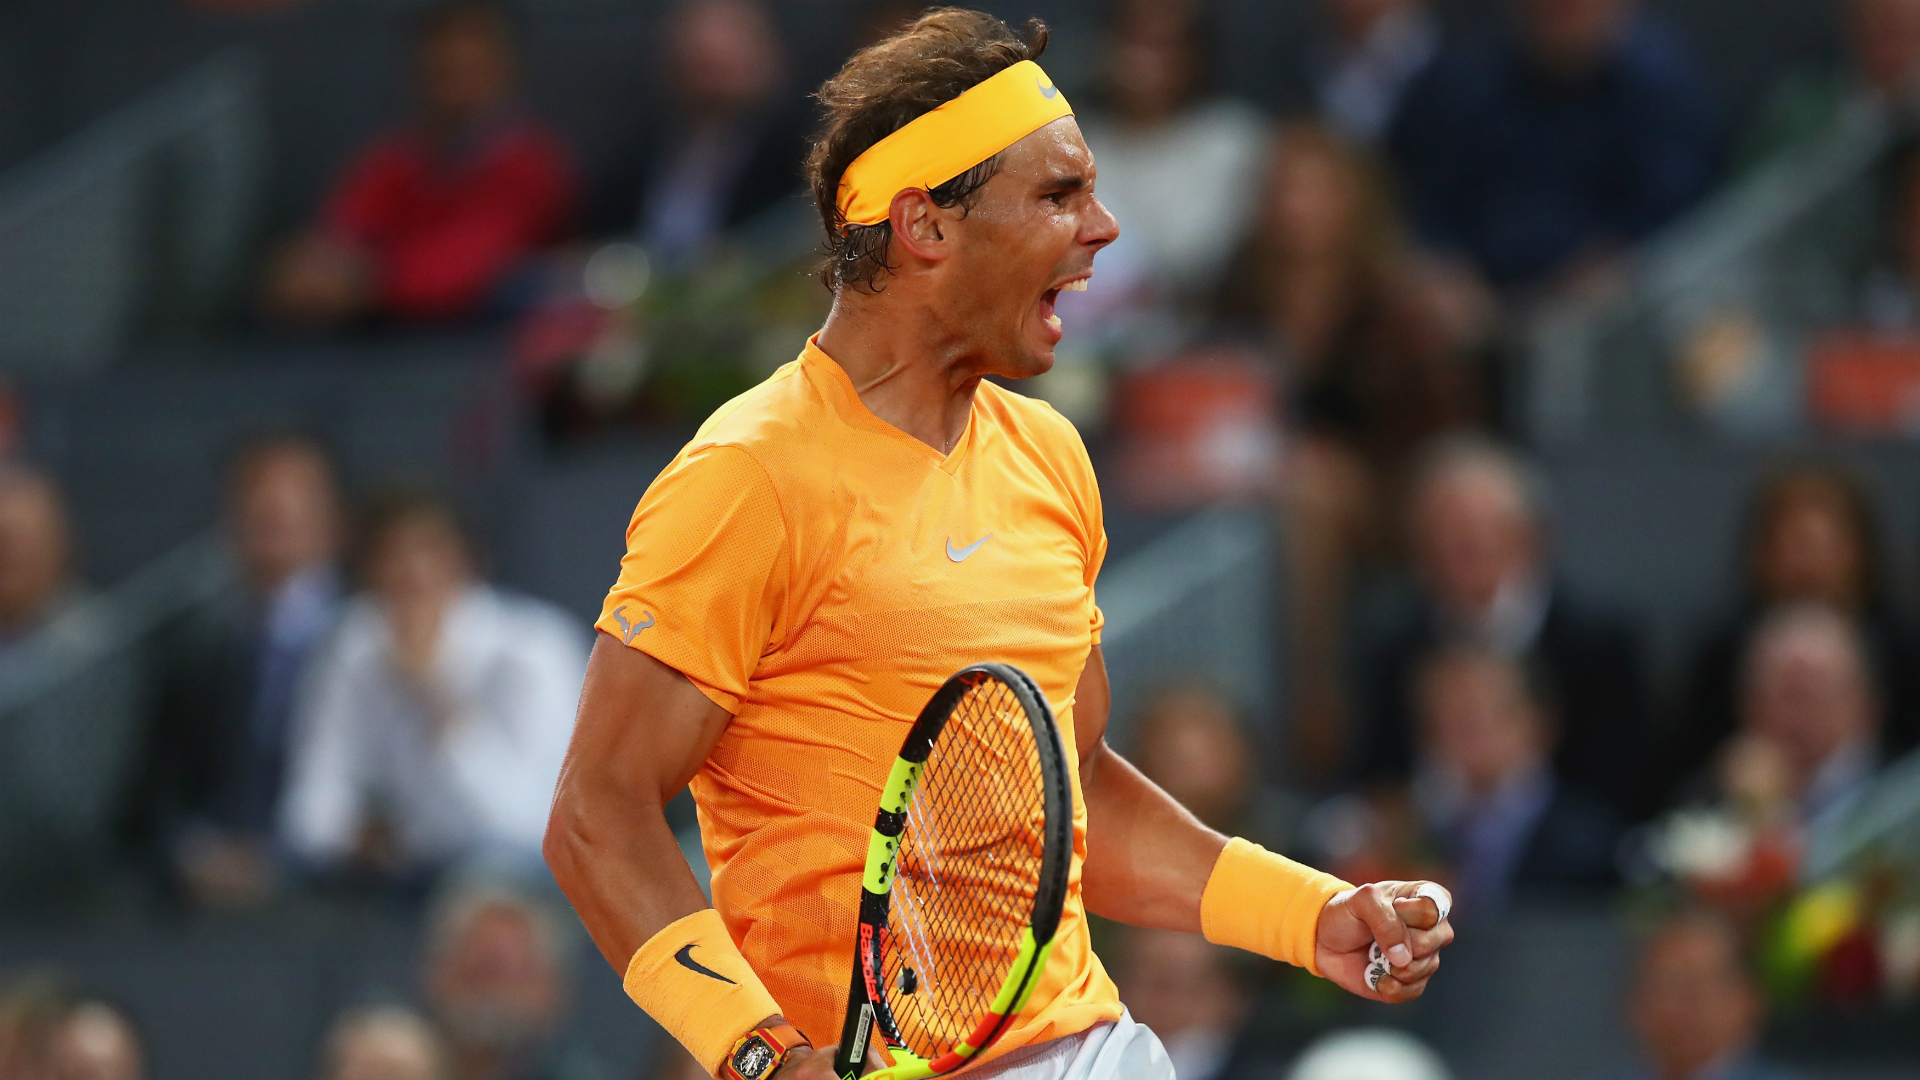 Rafael Nadal praises himself after ruthless Italian Open win over Damir Dzumhur